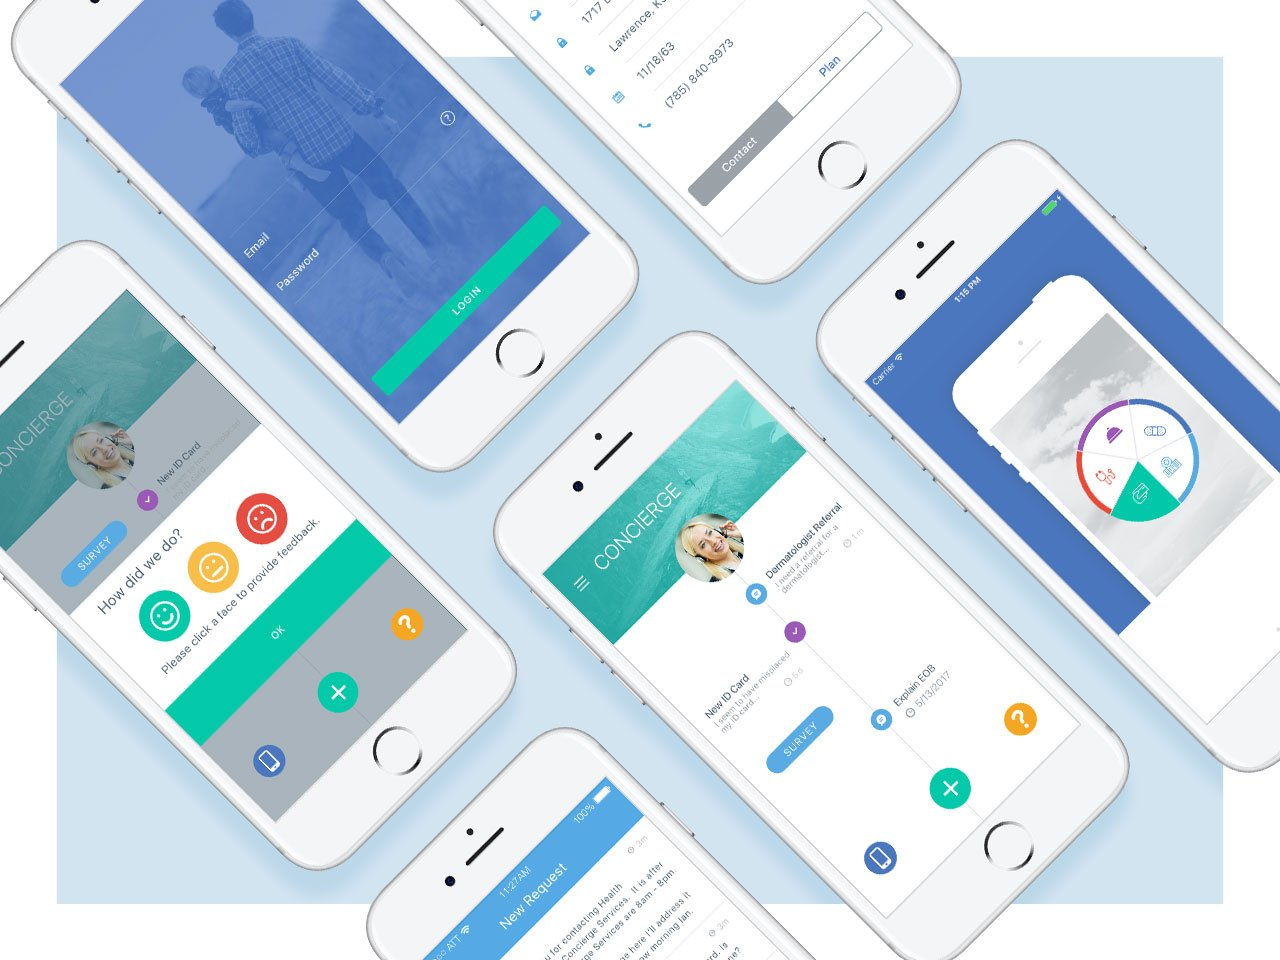 Kansas City App Design and health design